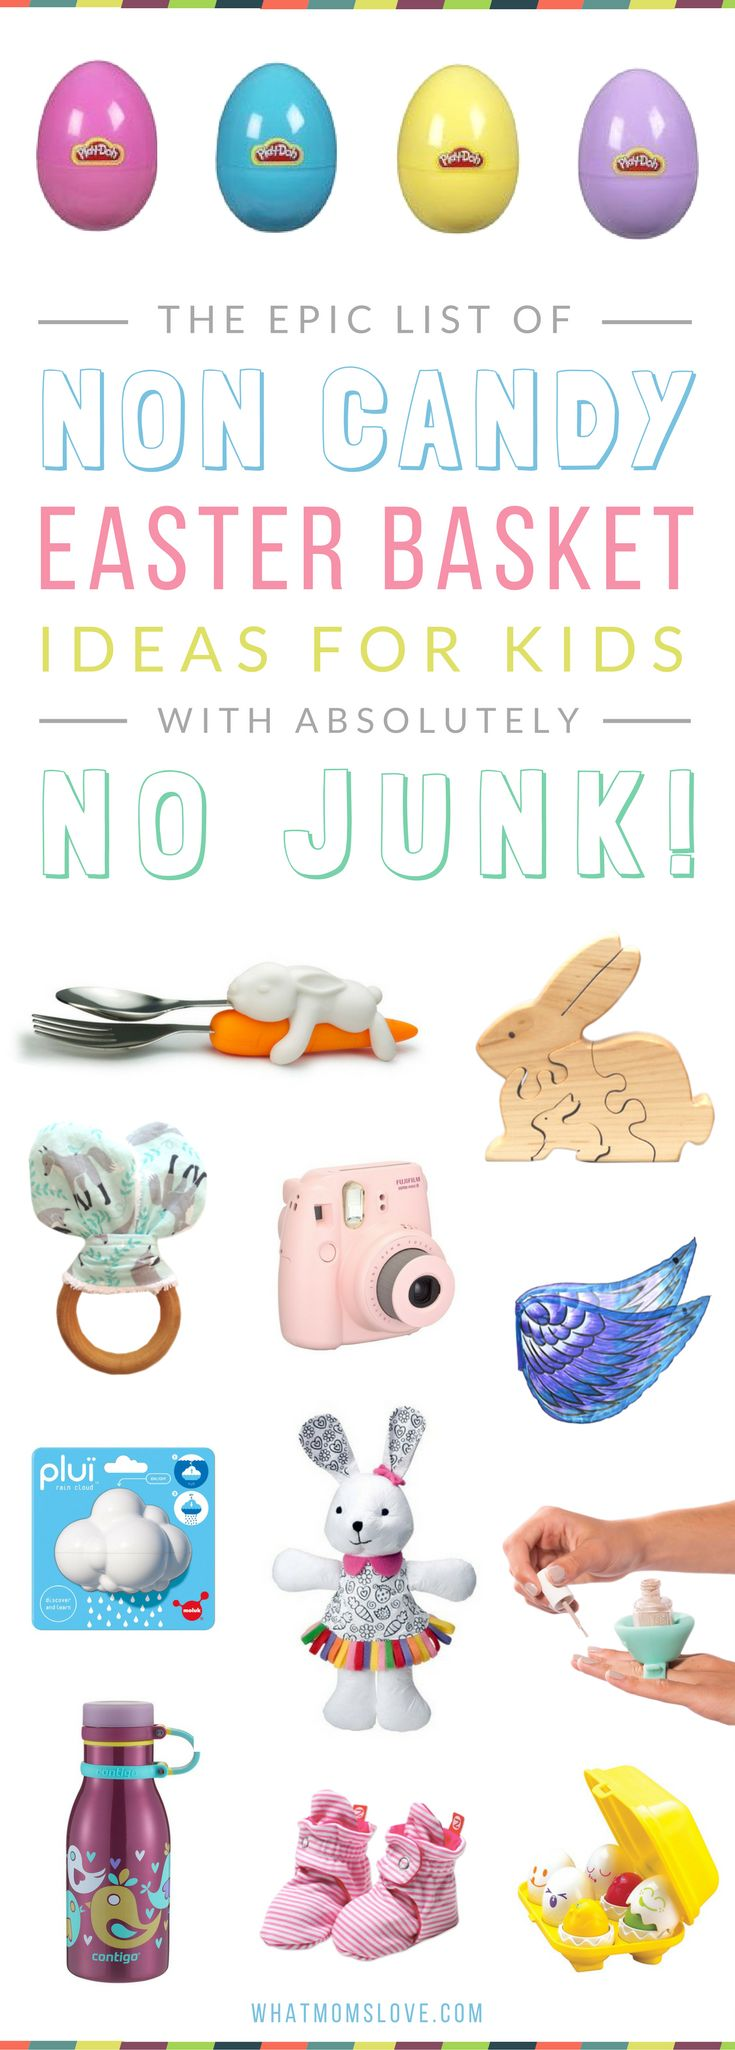 Non Candy Easter Basket Gift Ideas for Kids | Unique and fun ideas for babies, toddlers, tweens and teens - no junk included! Boys and girls will love these creative ideas! For the full list head to whatmomslove.com